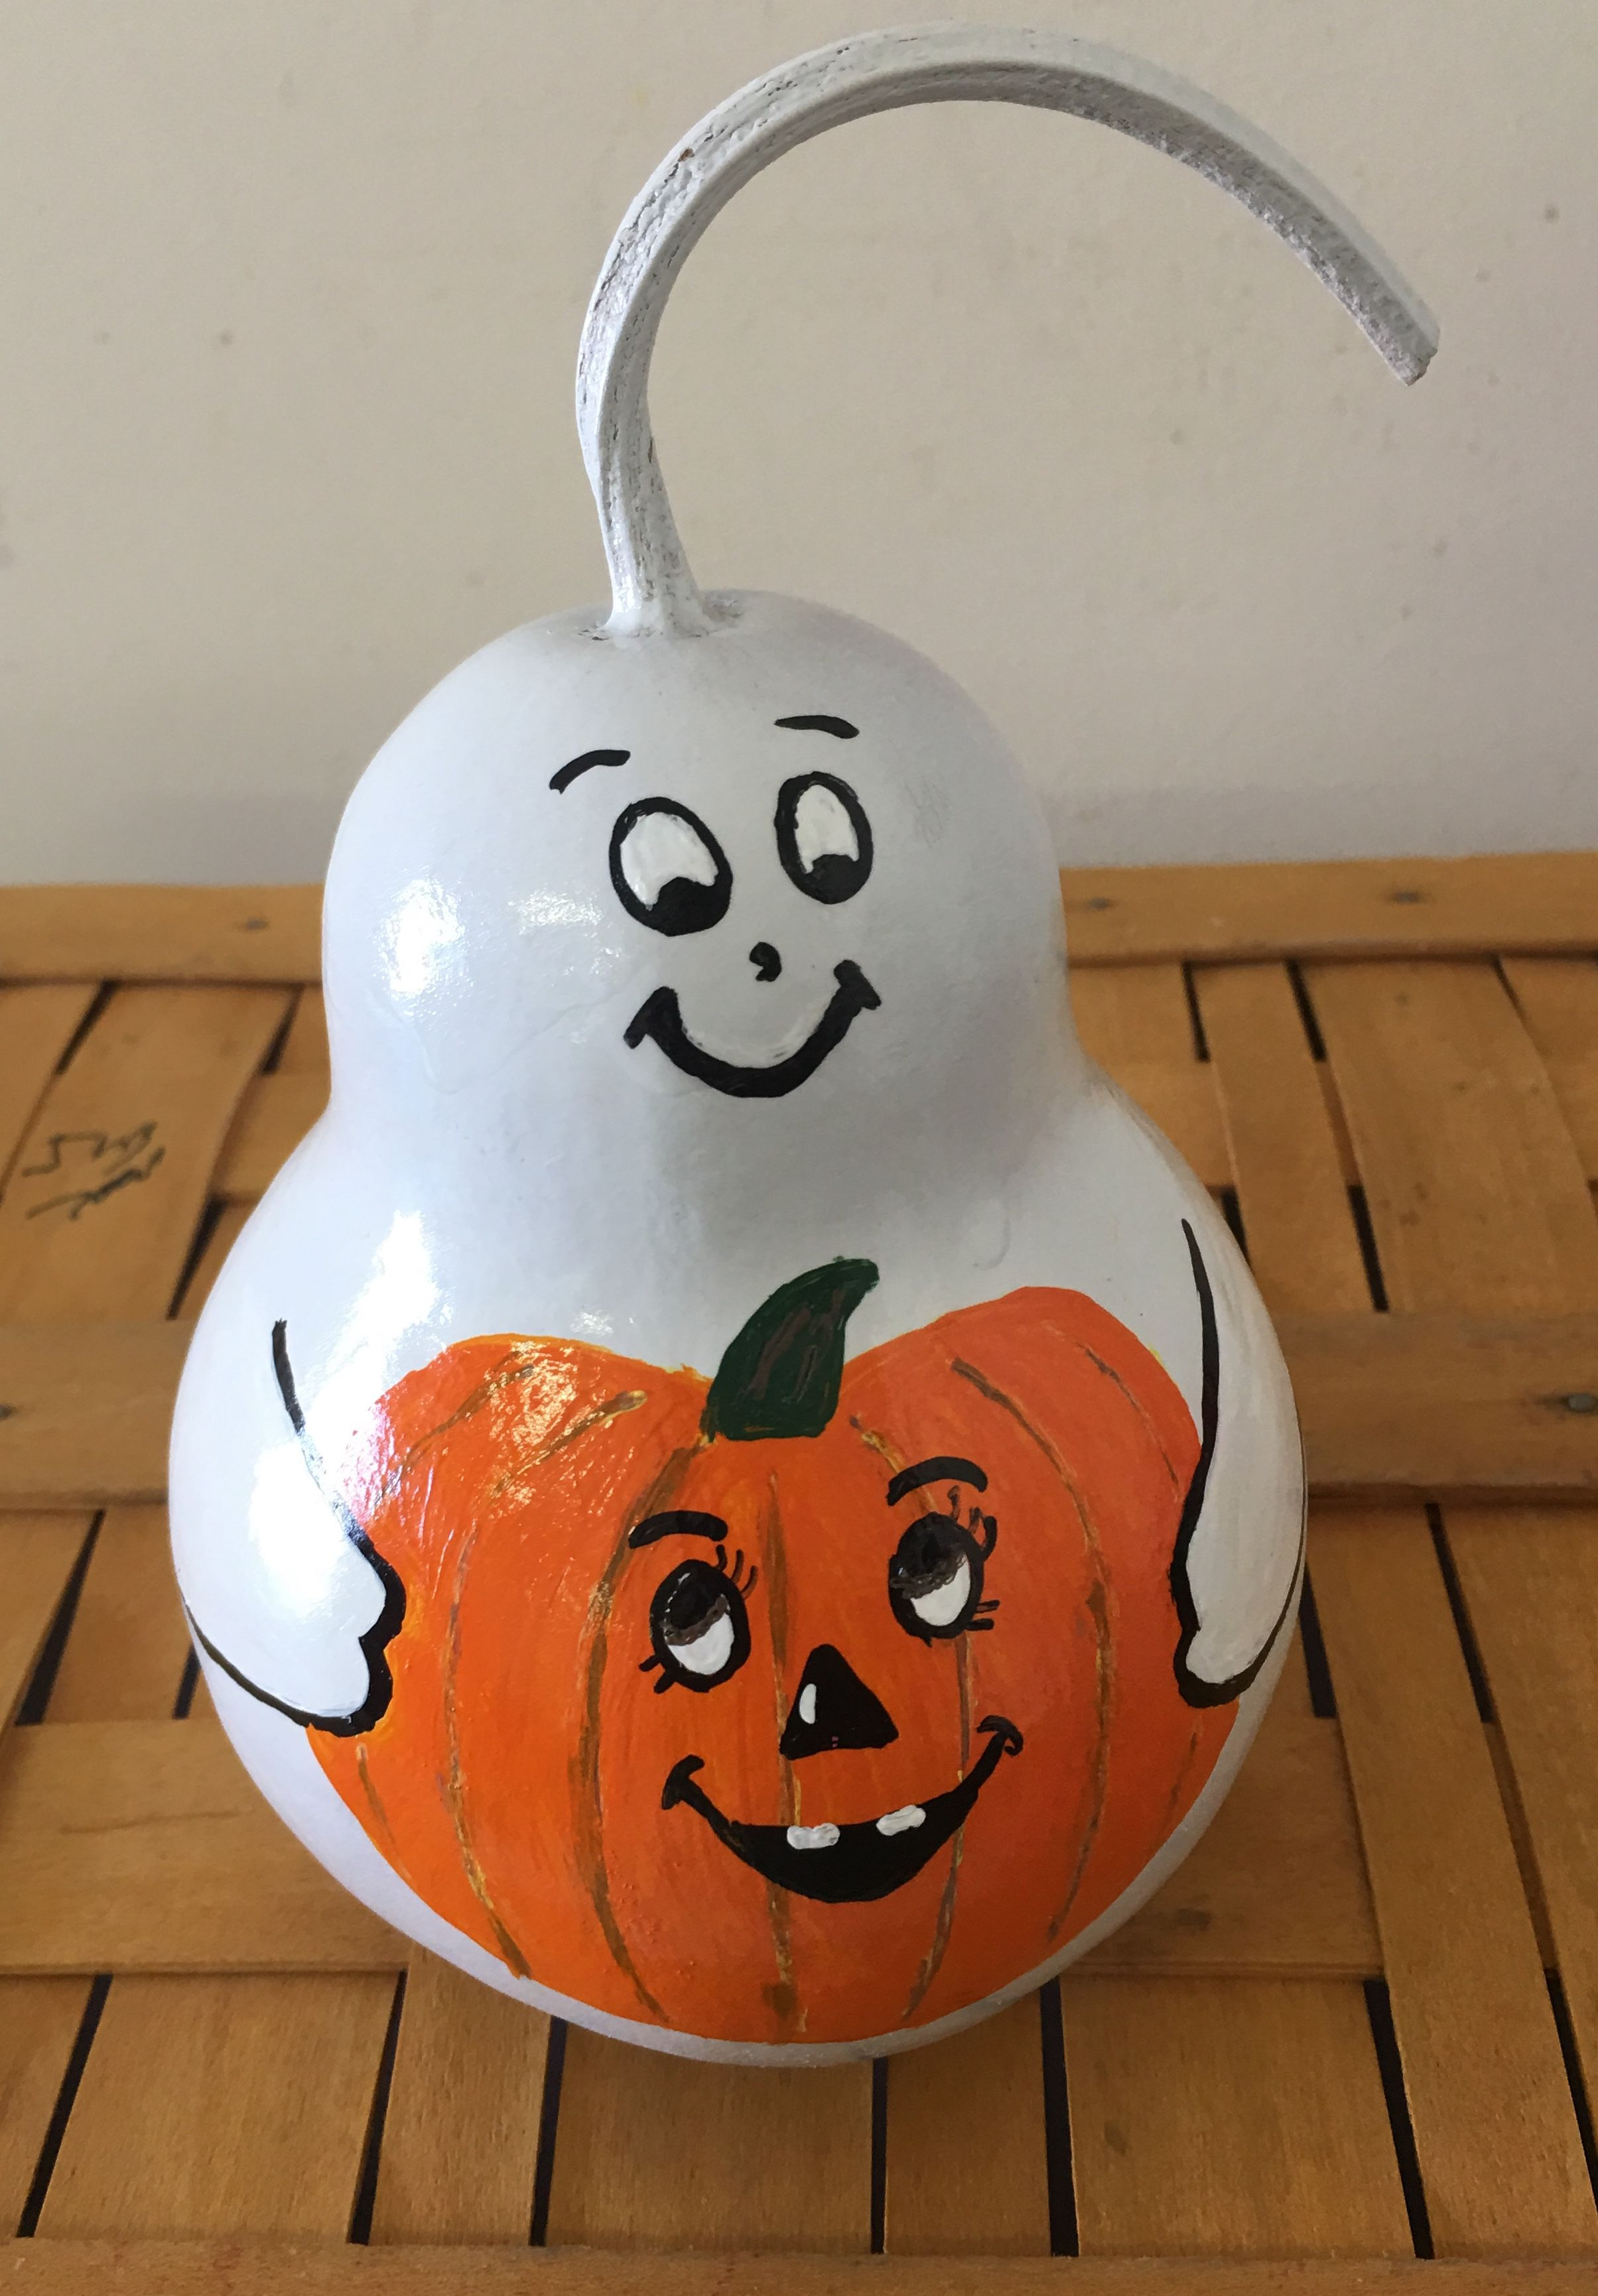 Gourd Ghost Holding A Pumpkin By Margie Vollenweider 6 19 Hand Painted Gourds Decorative Gourds Painted Gourds